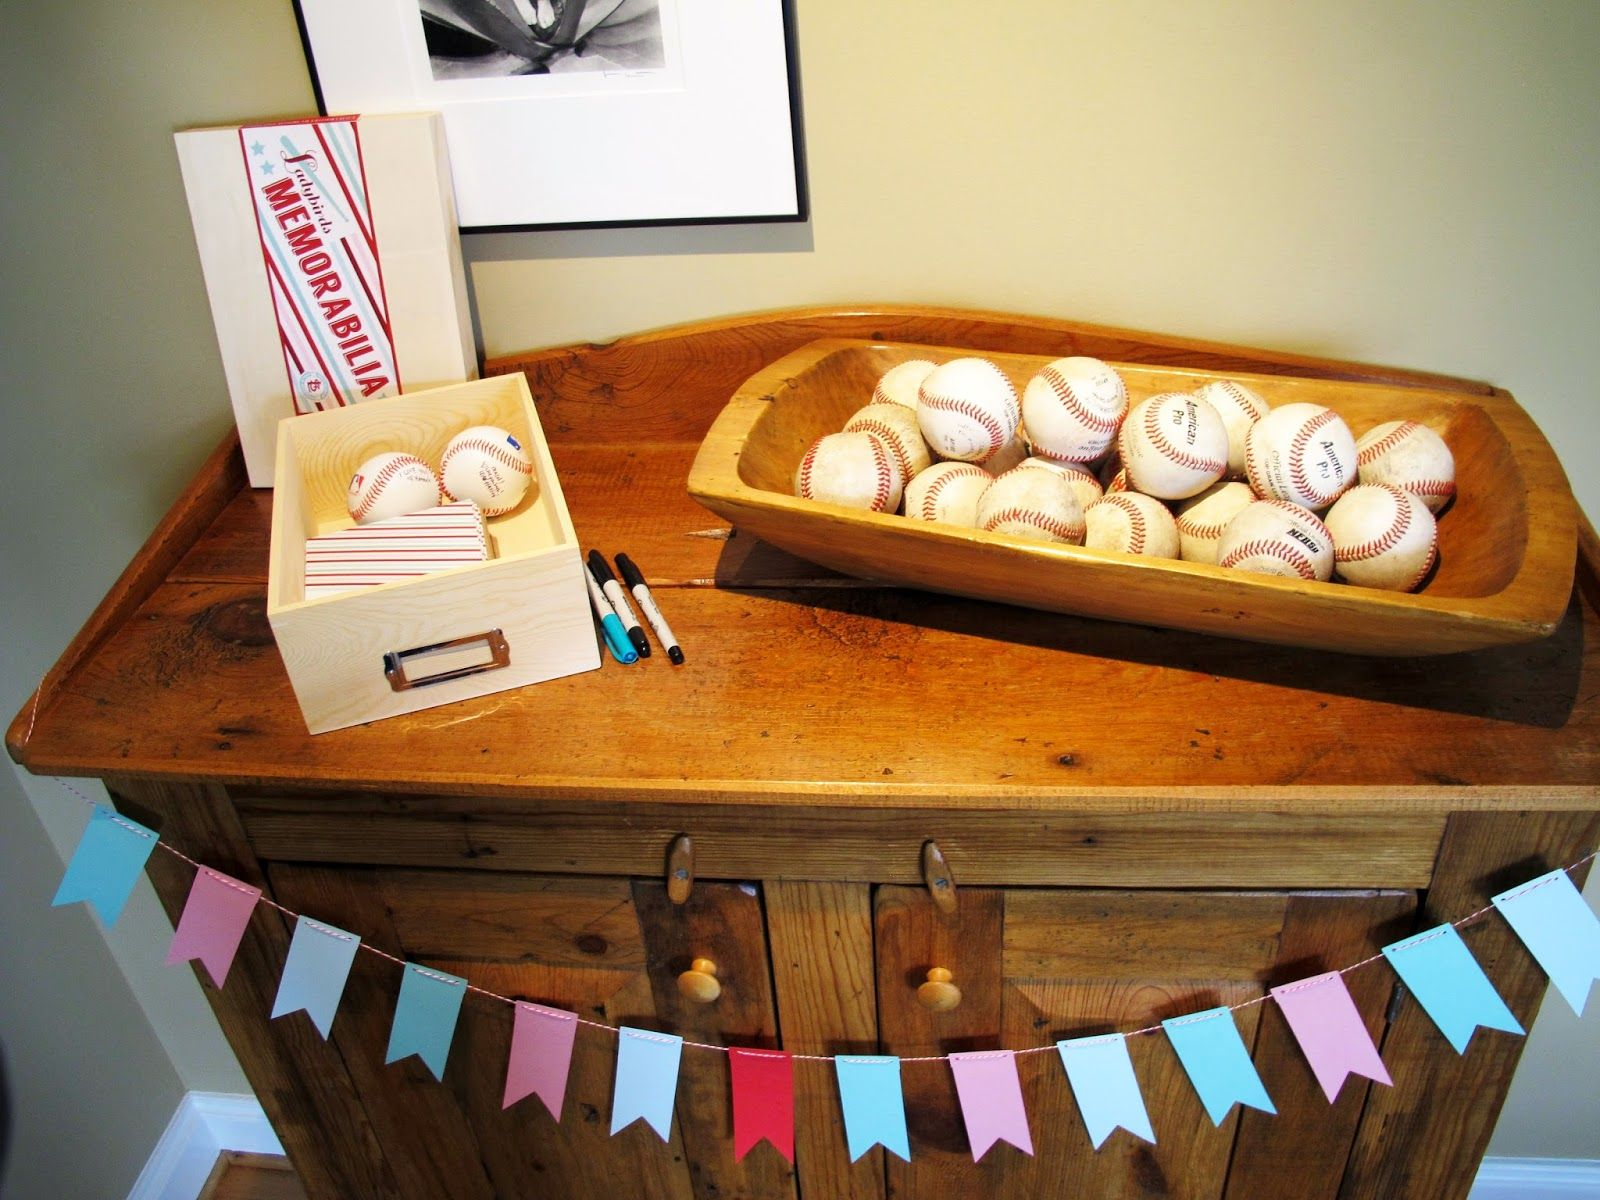 20 Baseball Themed Bridal Shower Pictures And Ideas On Meta Networks